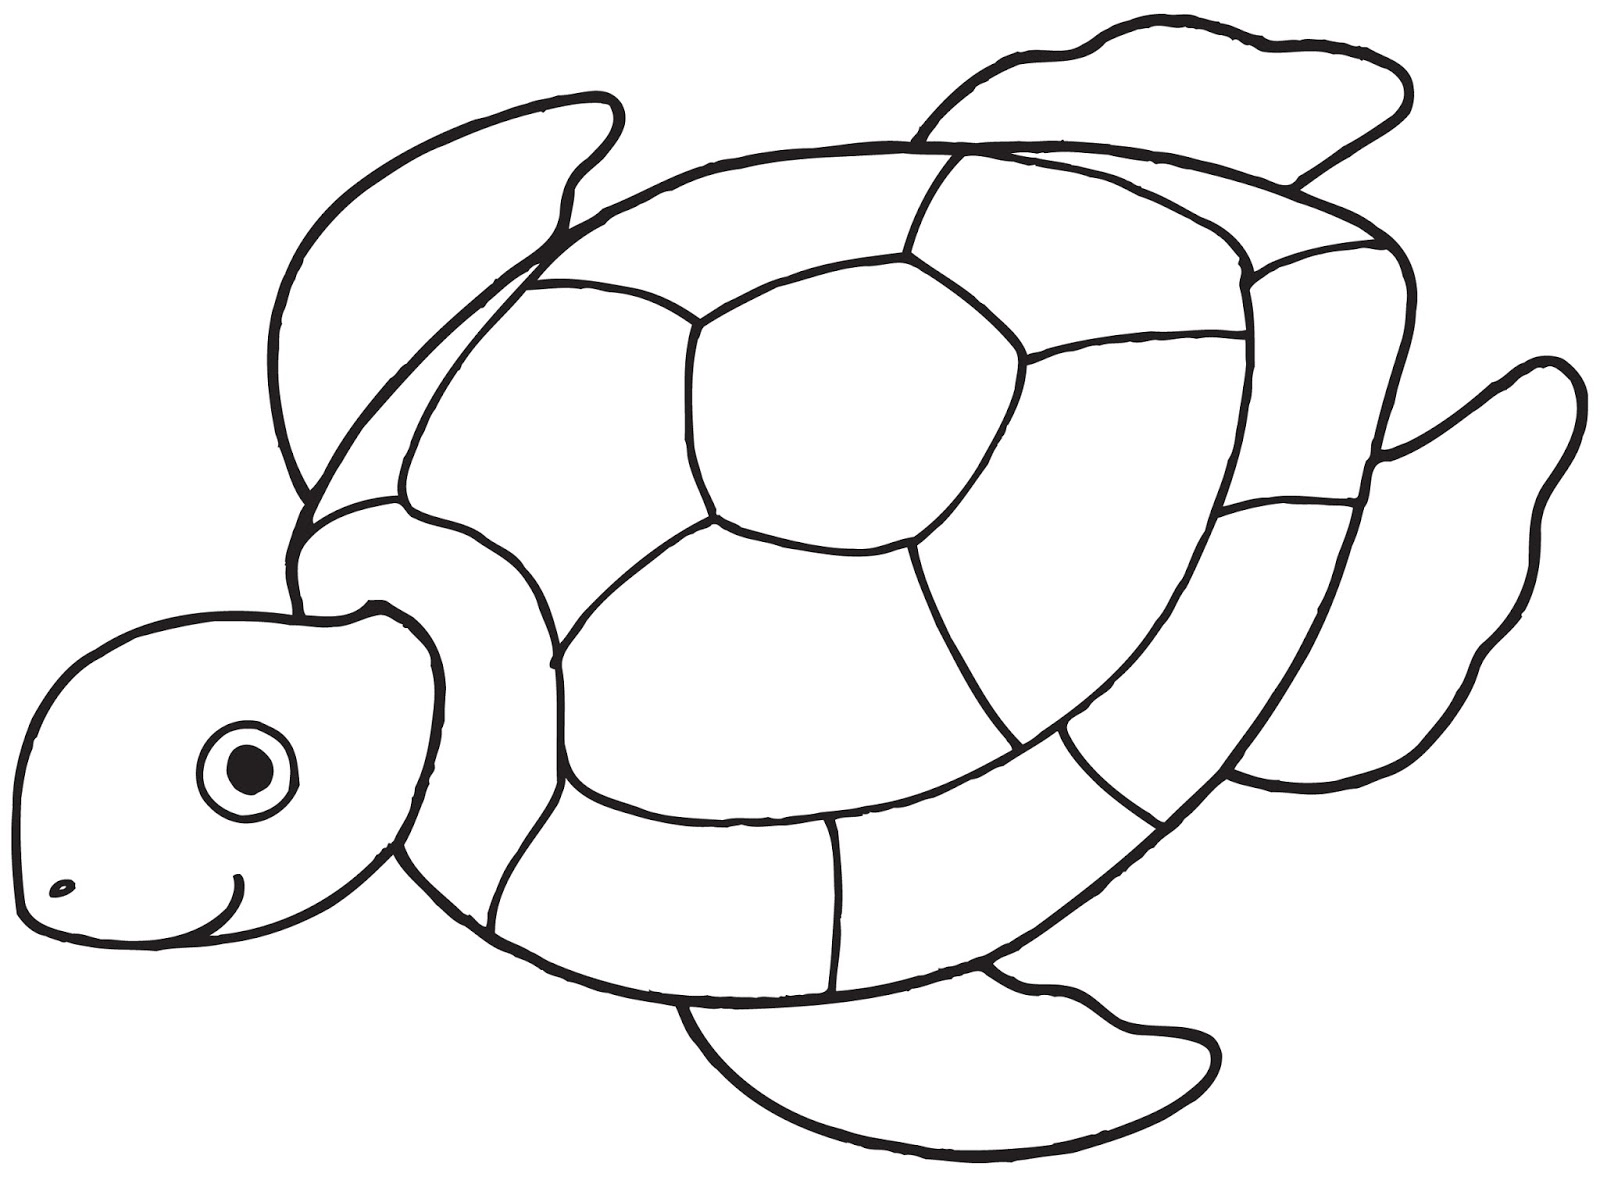 Turtle Templates on sea snake outlines